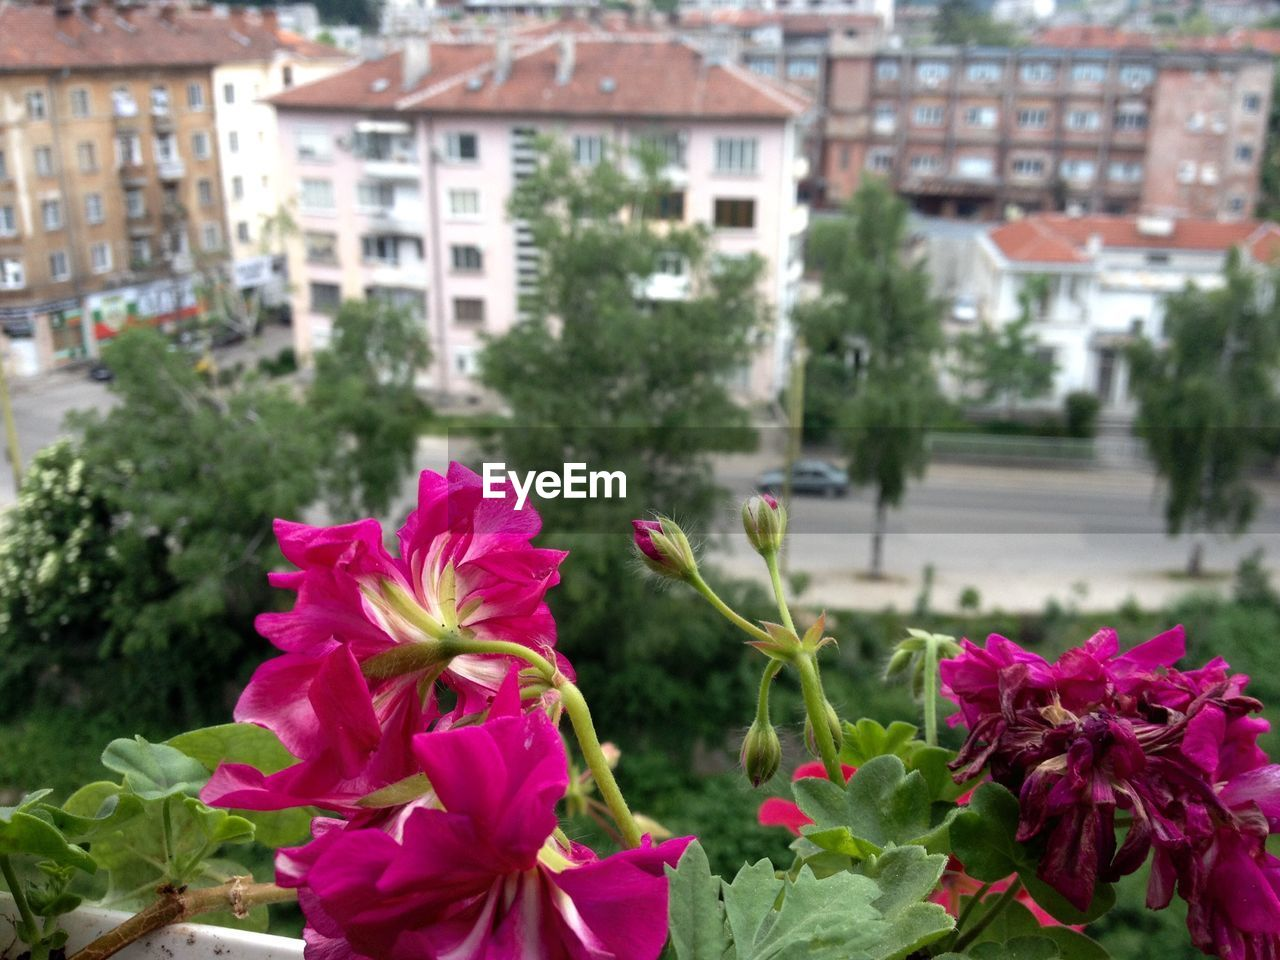 flower, focus on foreground, fragility, growth, plant, pink color, no people, freshness, day, nature, petal, building exterior, built structure, architecture, beauty in nature, outdoors, blooming, flower head, red, close-up, city